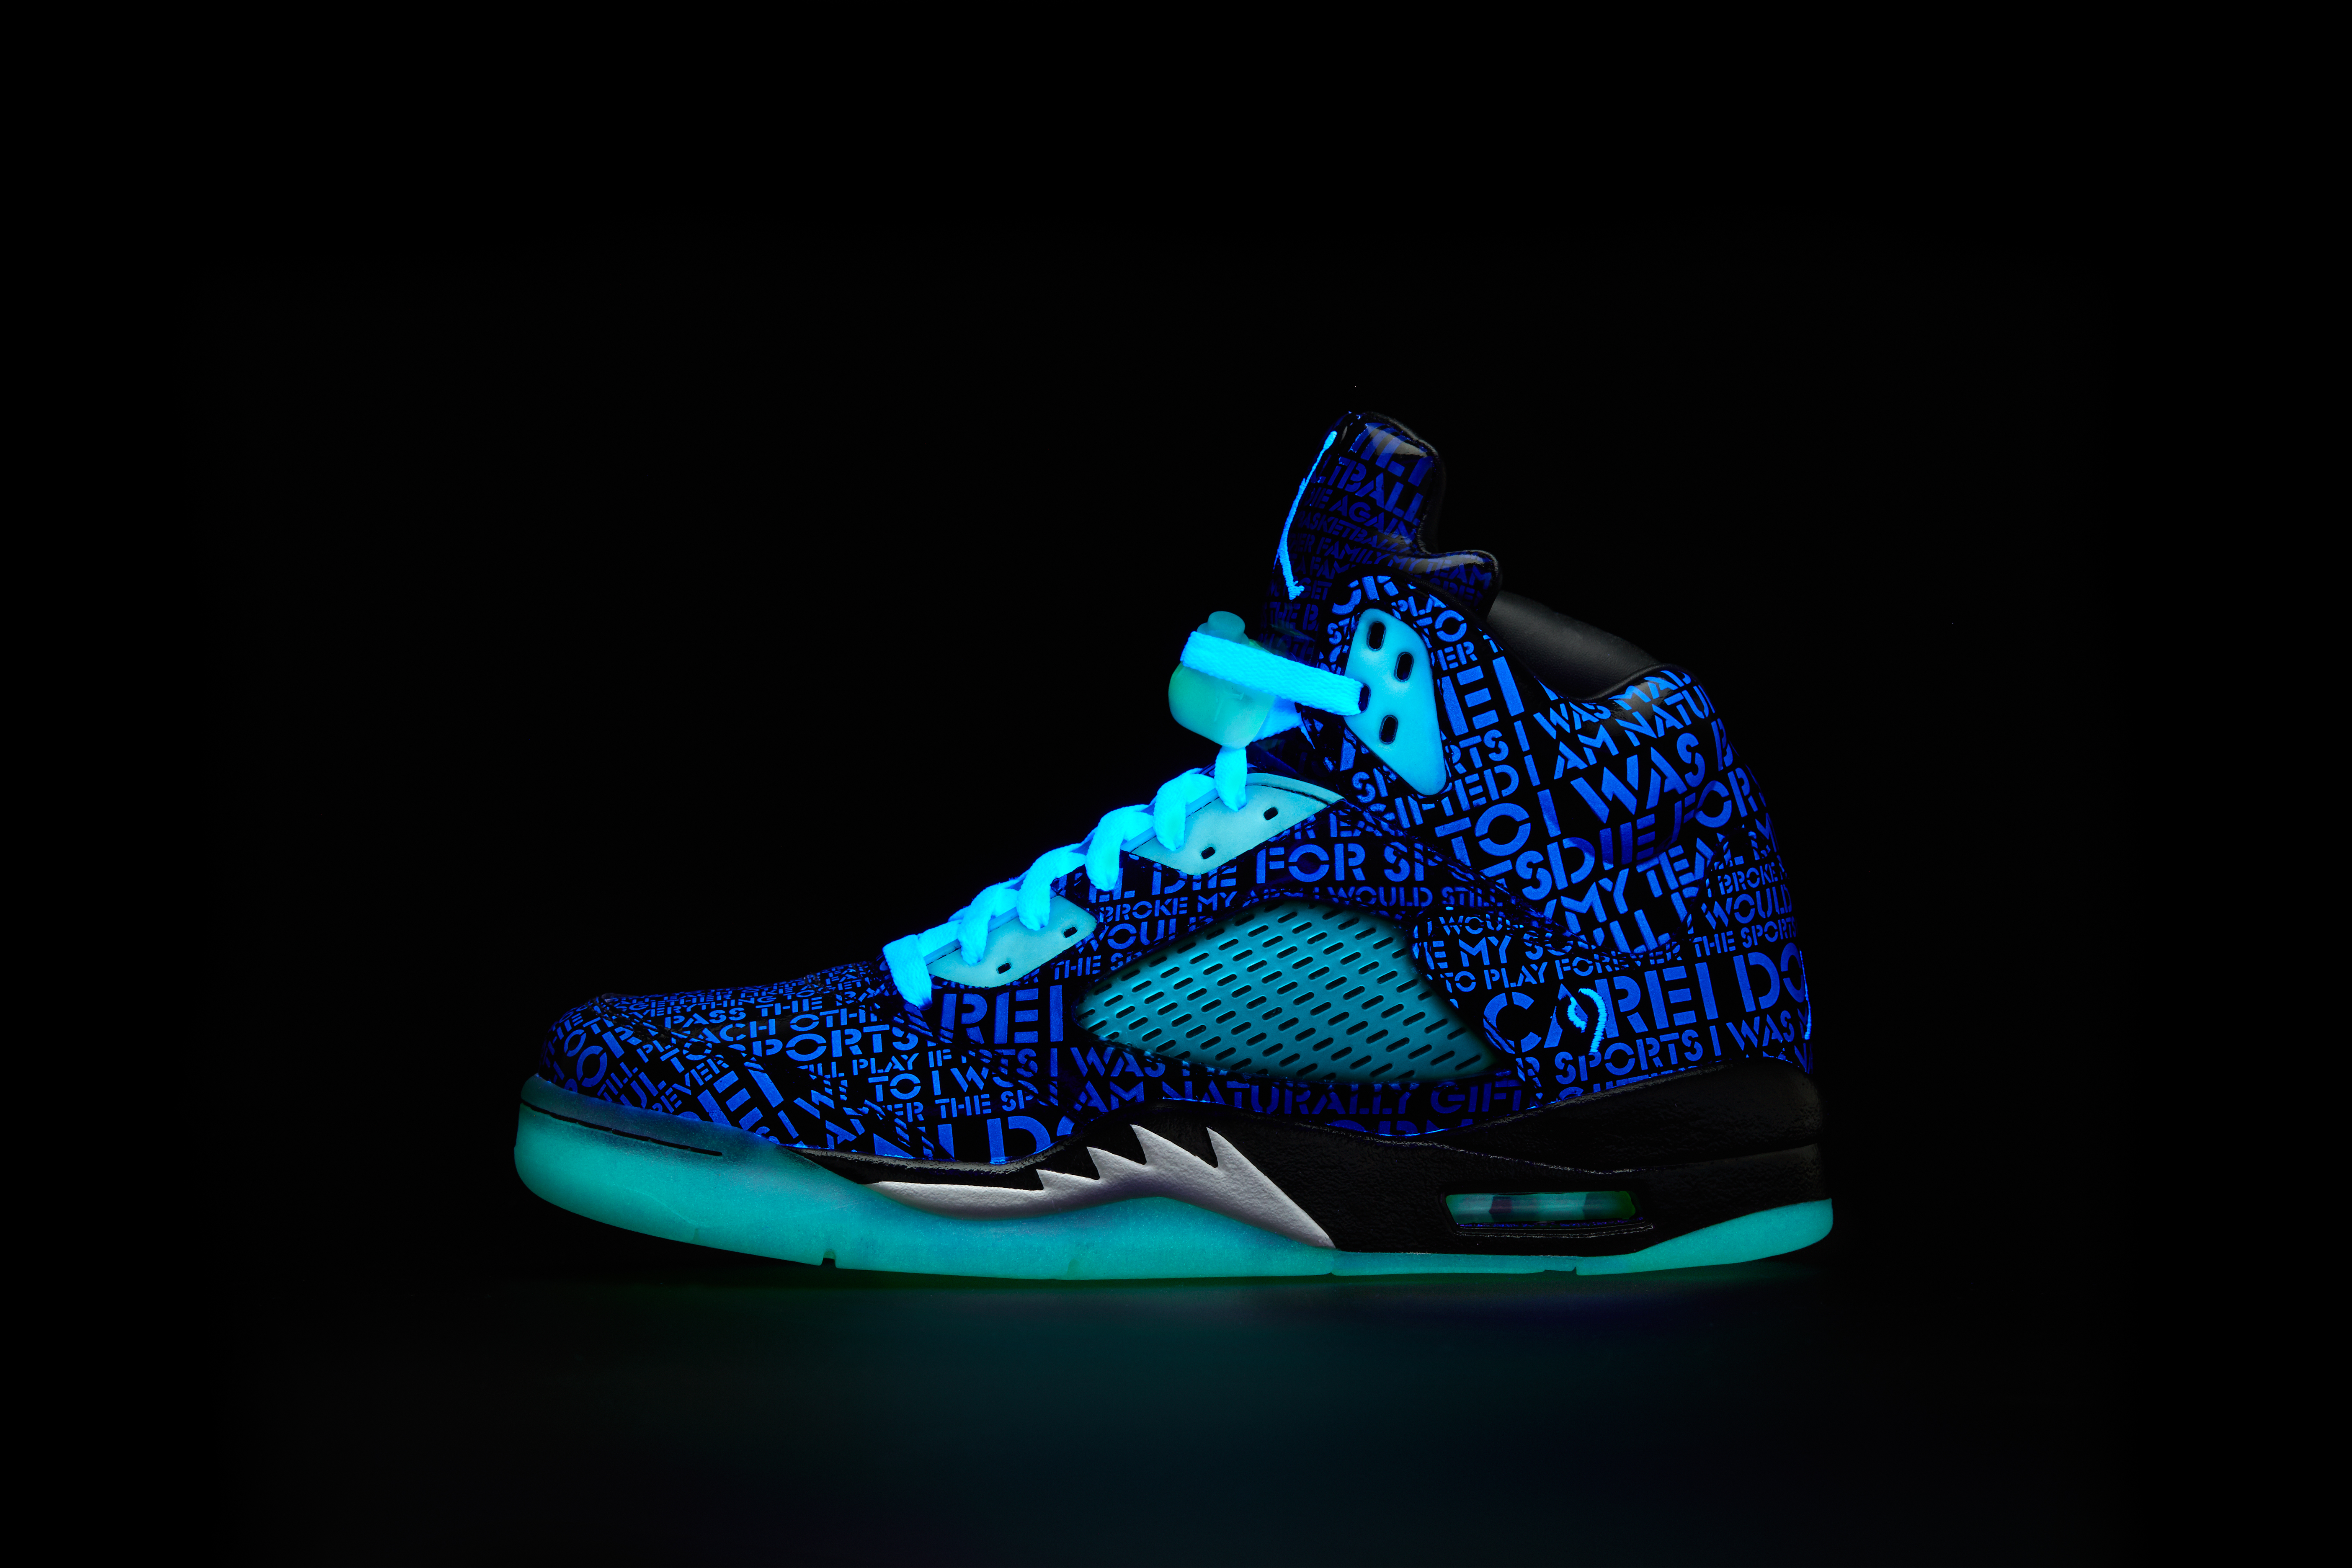 nike air jordan v 5 retro doernbecher 8s